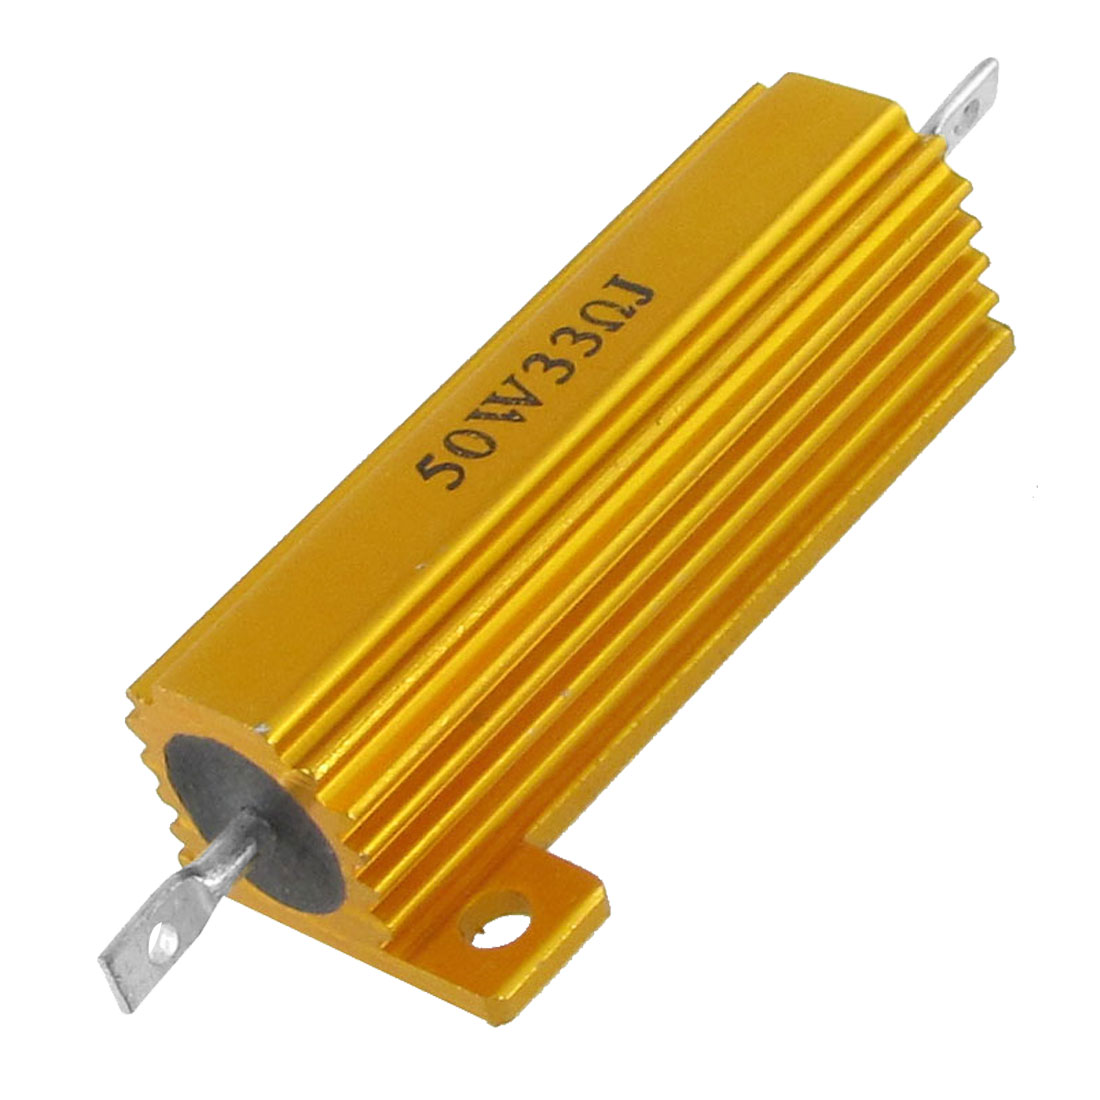 Gold Tone 50W 33 Ohm Aluminum Housed Wirewound Power Resistor